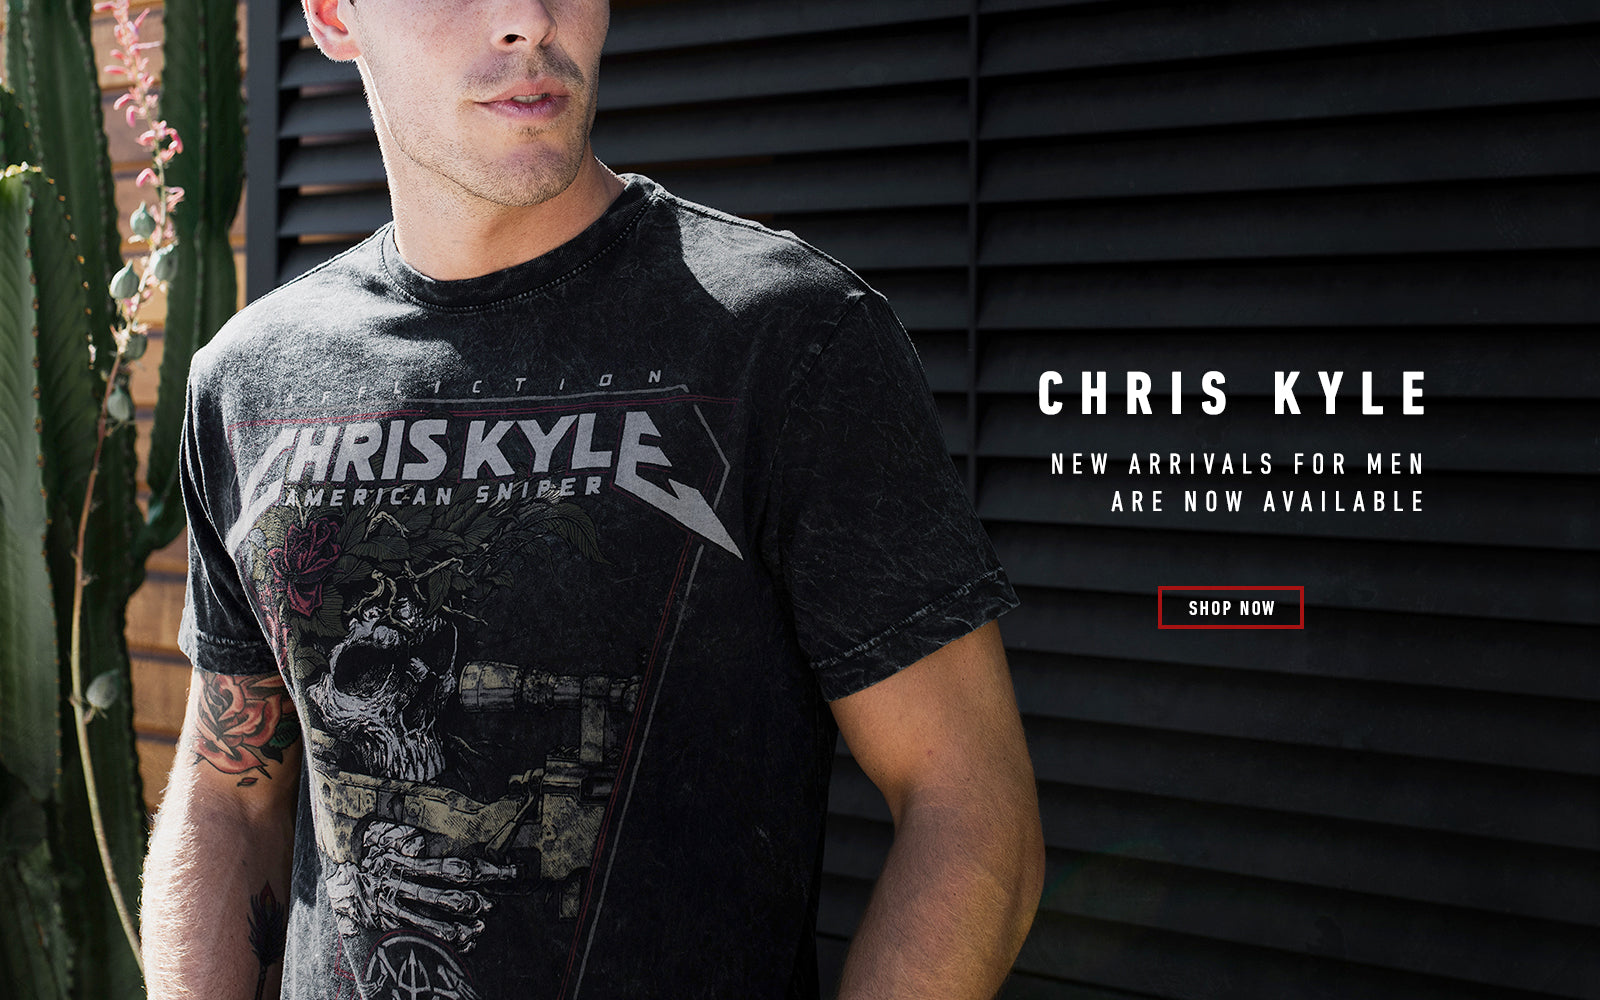 chris kyle new arrivals for men are now available